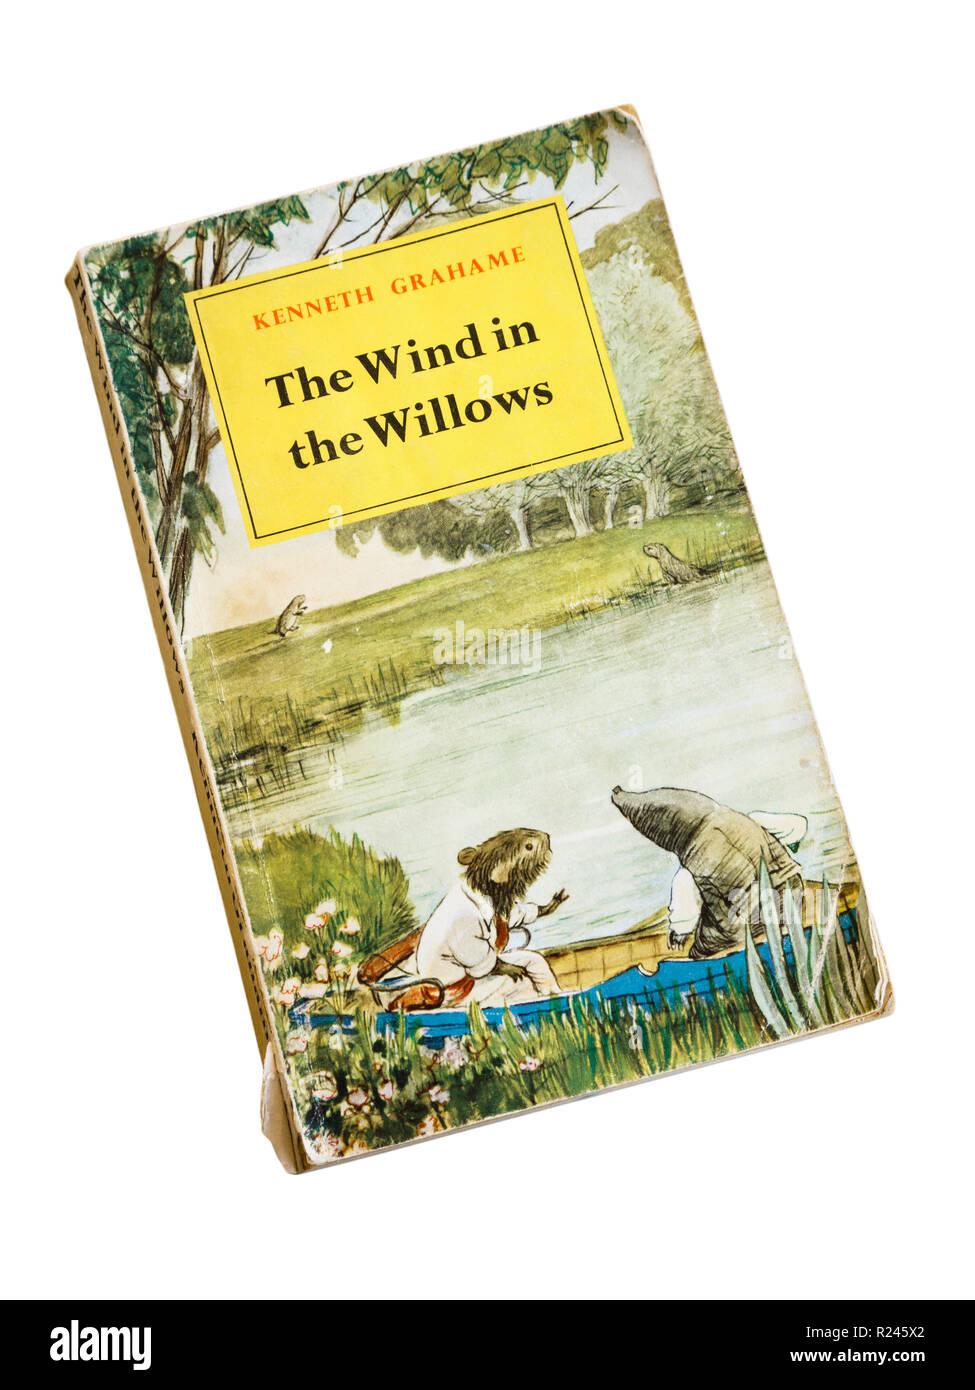 Illustrated front cover of old dog-eared paperback book The Wind in the Willows by Kenneth Grahame. Cutout on white. 1961 edition by Methuen & Co Ltd. - Stock Image